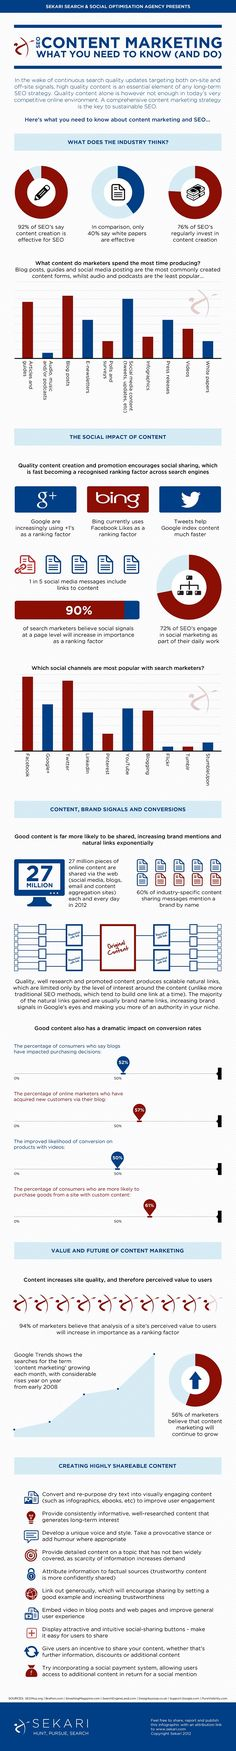 content marketing #SEO strategy Infographic www.socialmediamamma.com